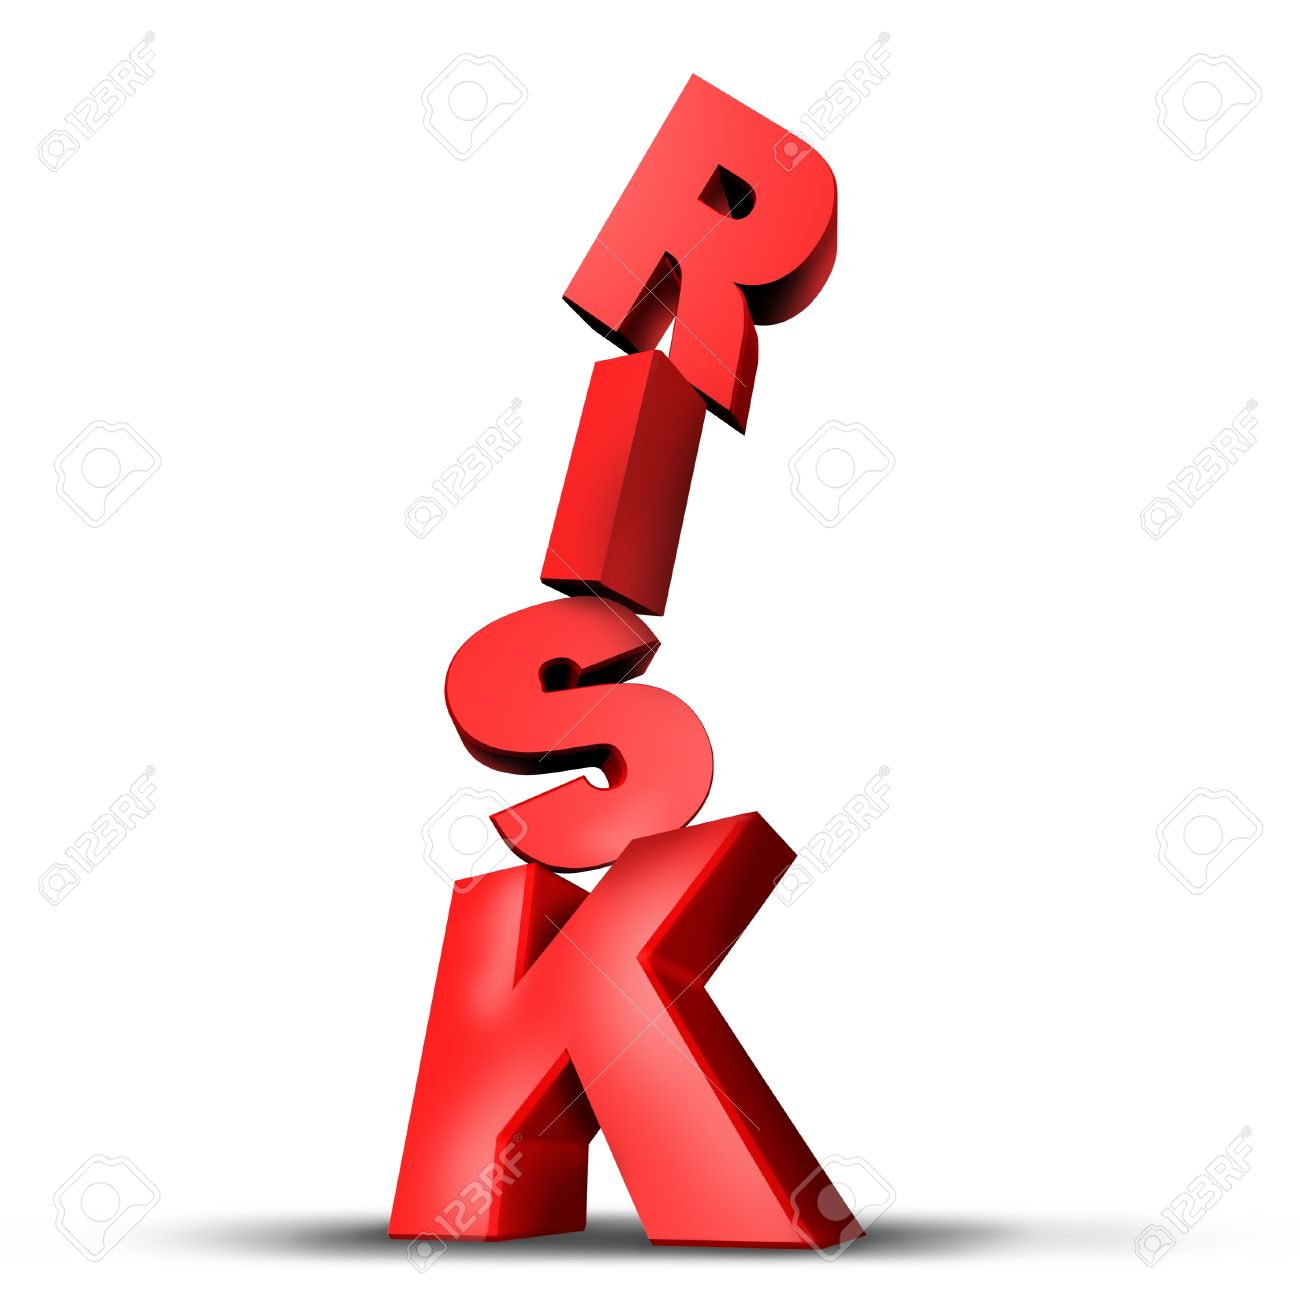 Risks symbol with dimensional unsteady text letters on the verge of falling down trying deperately to keep its fragile balance as an anxiety concept of risky behavior and business risk or health risks on a white background. Stock Photo - 11718550